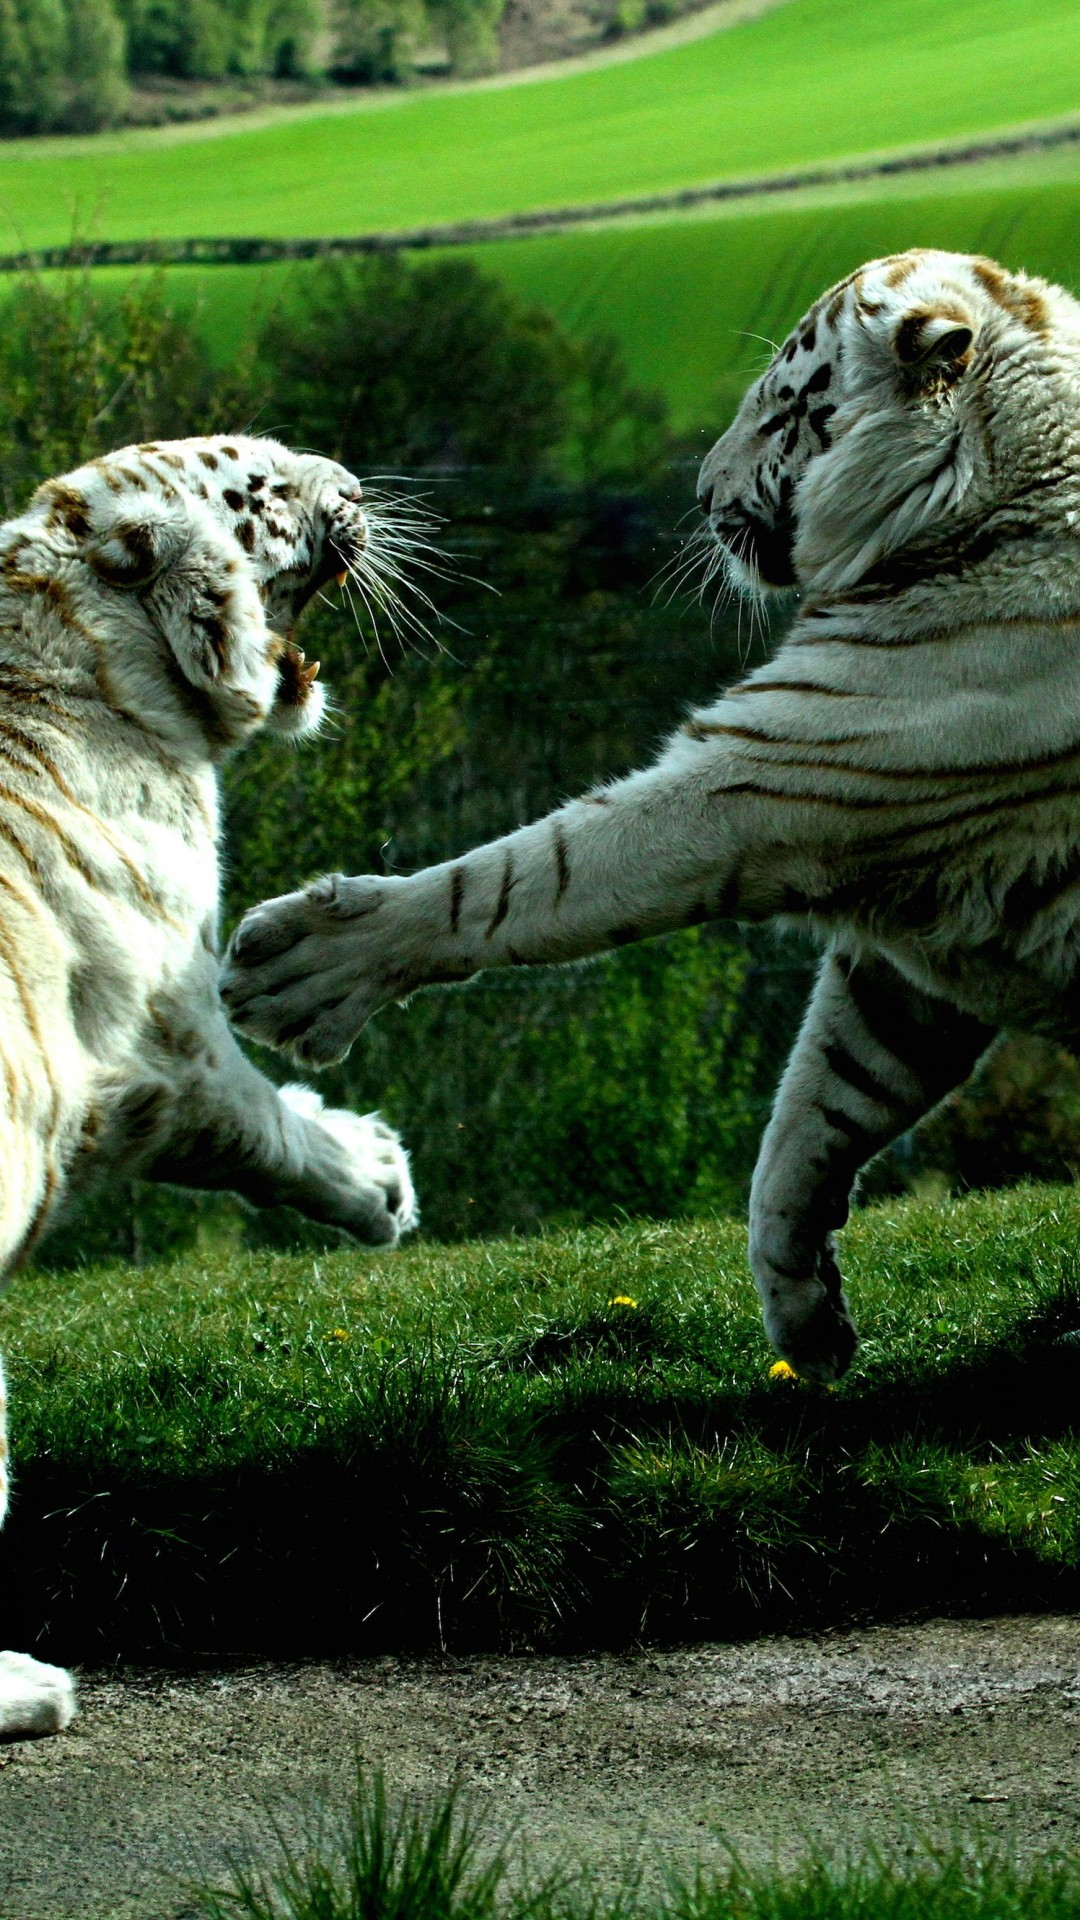 White Tigers Fighting Wallpaper for SAMSUNG Galaxy Note 3